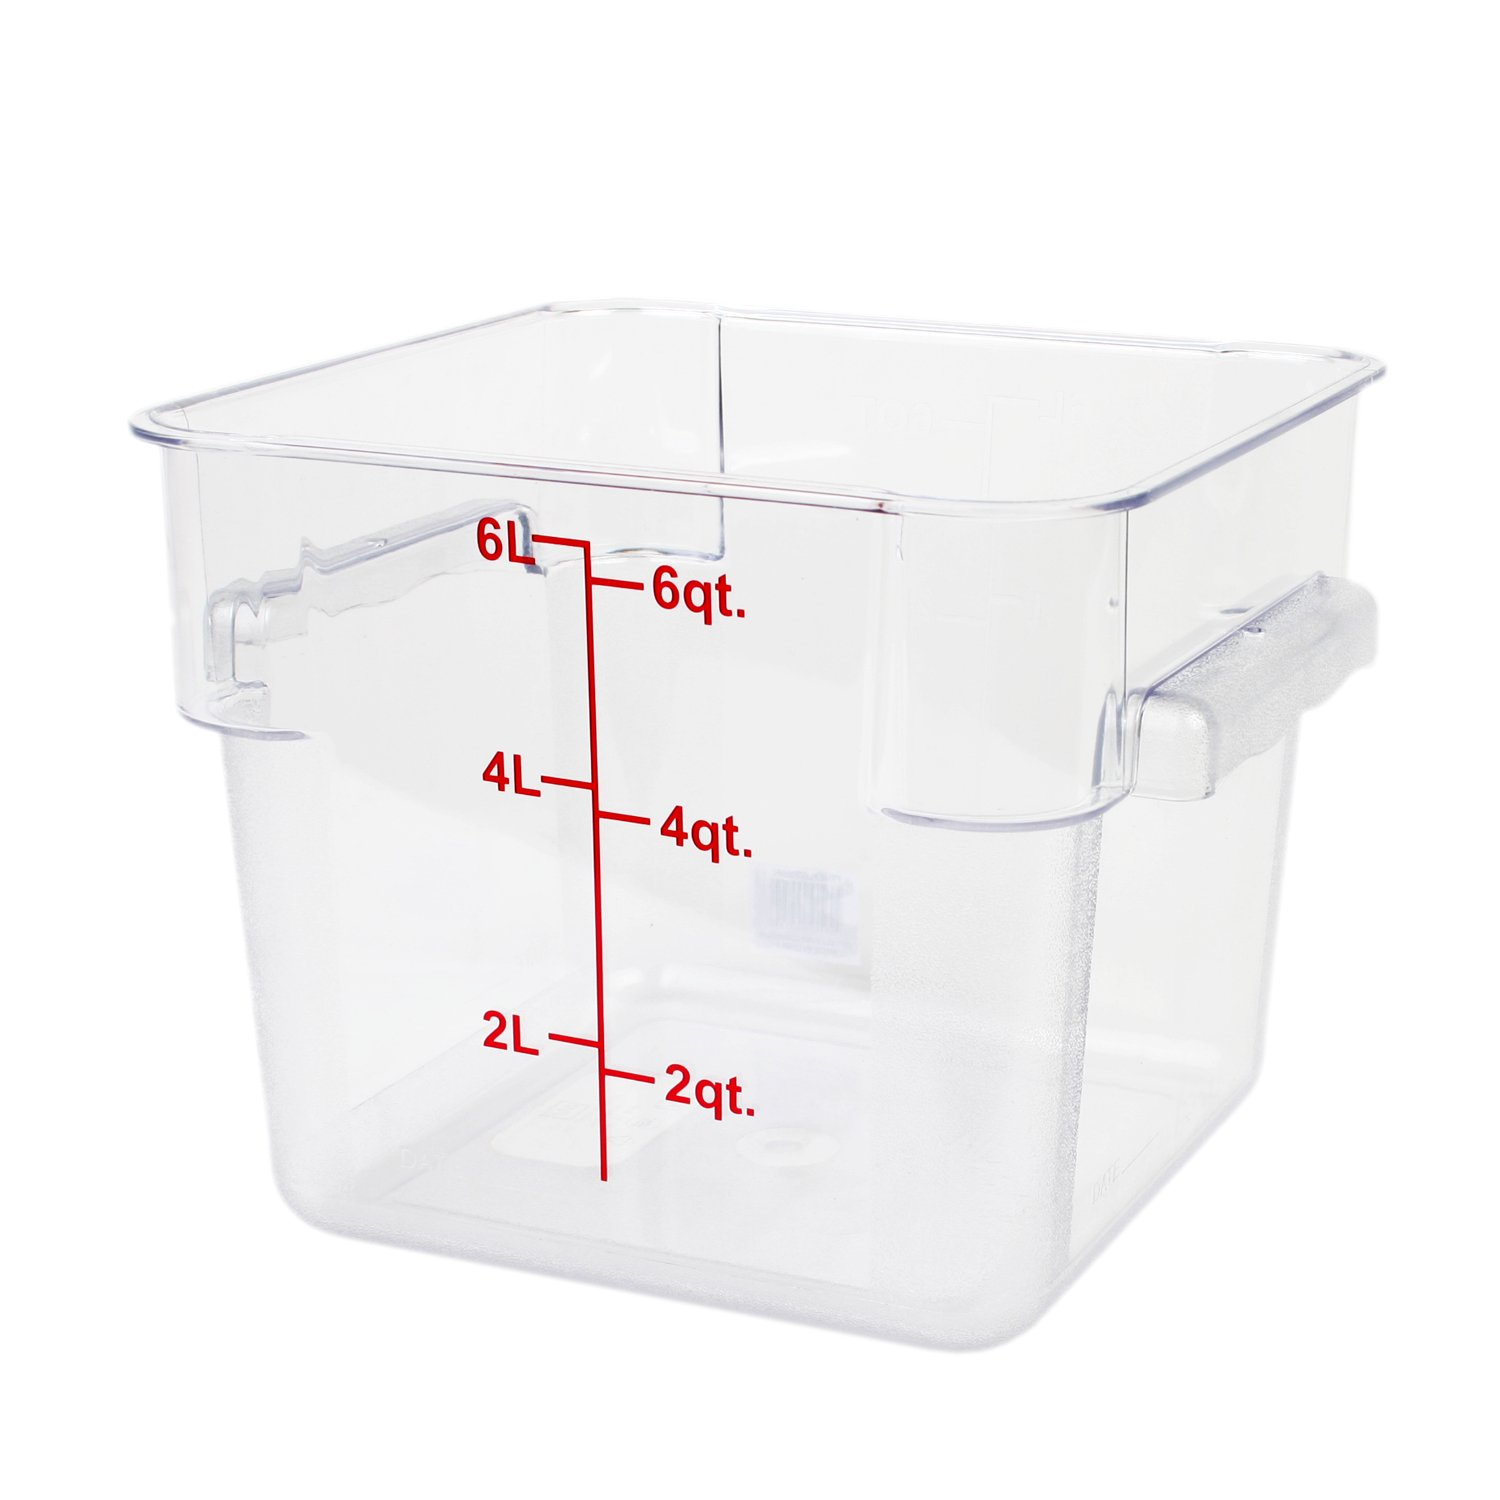 Excellante 6-Quart Polycarbonate Square Food Storage Containers, Clear